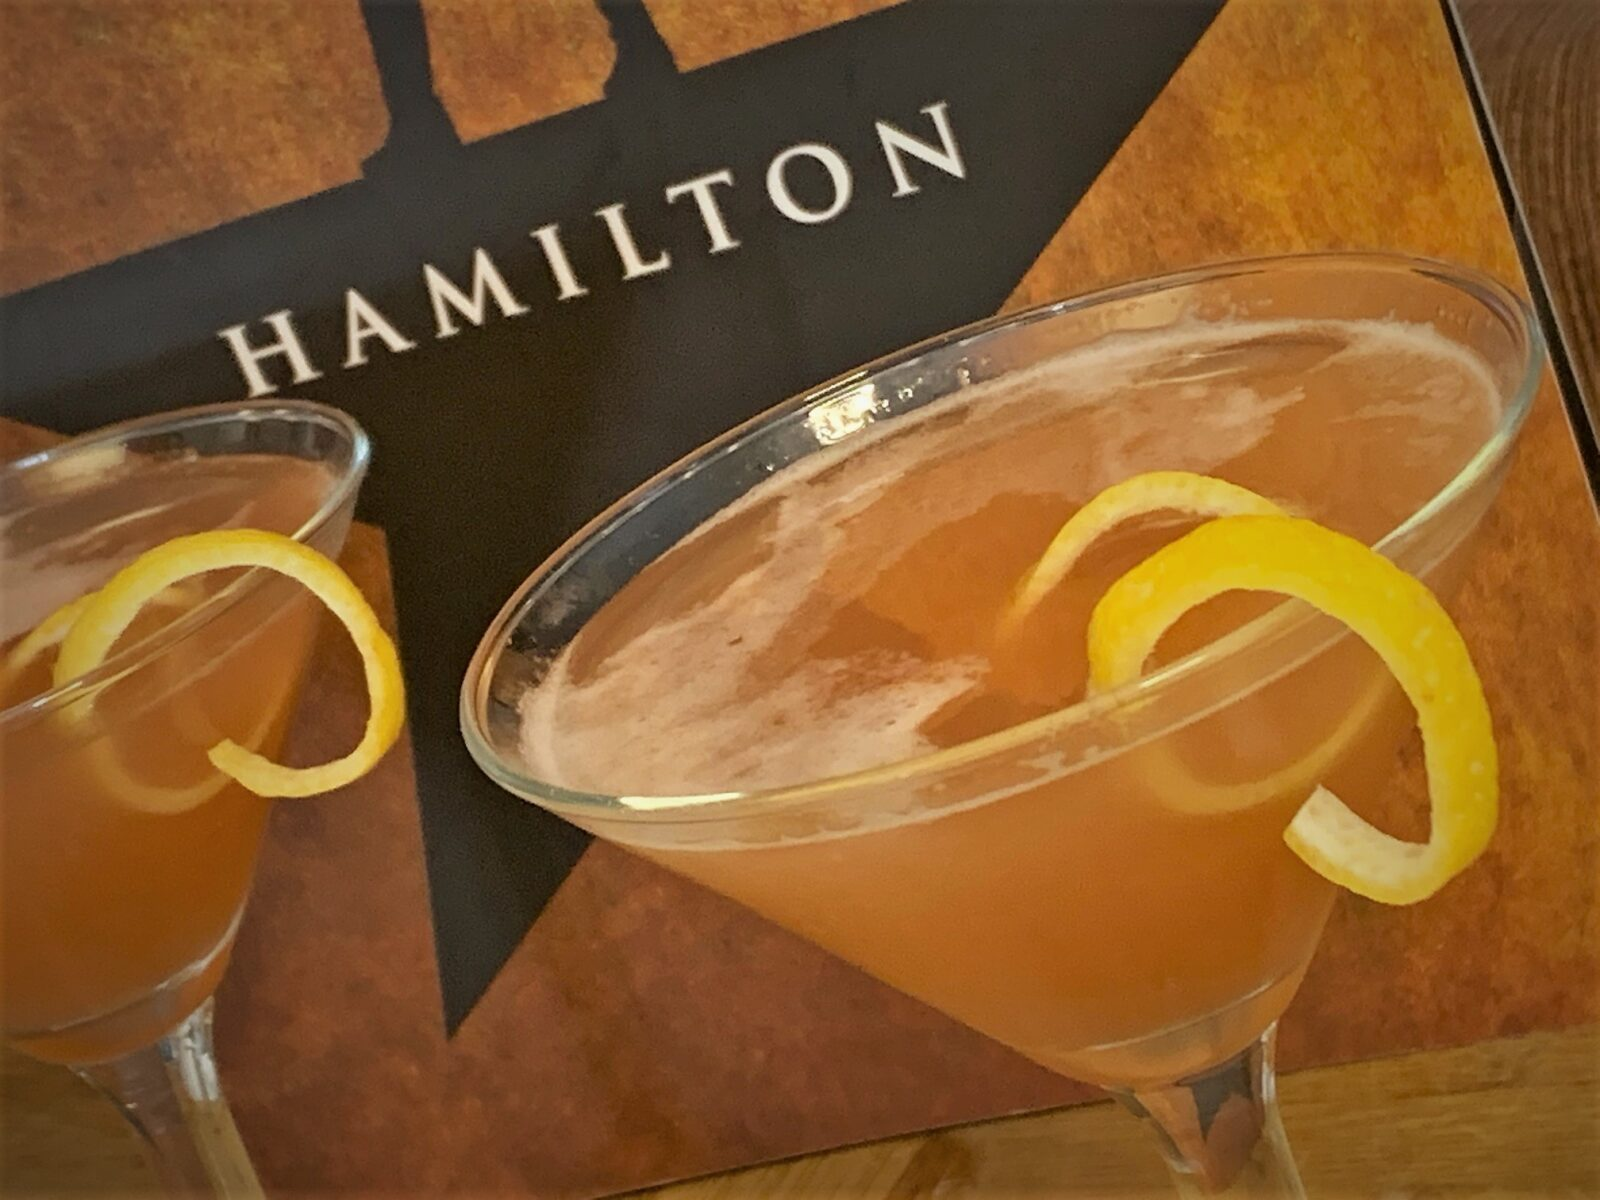 Our completed America's Favorite Fighting French Martini - A Hamilton Inspired Cocktail